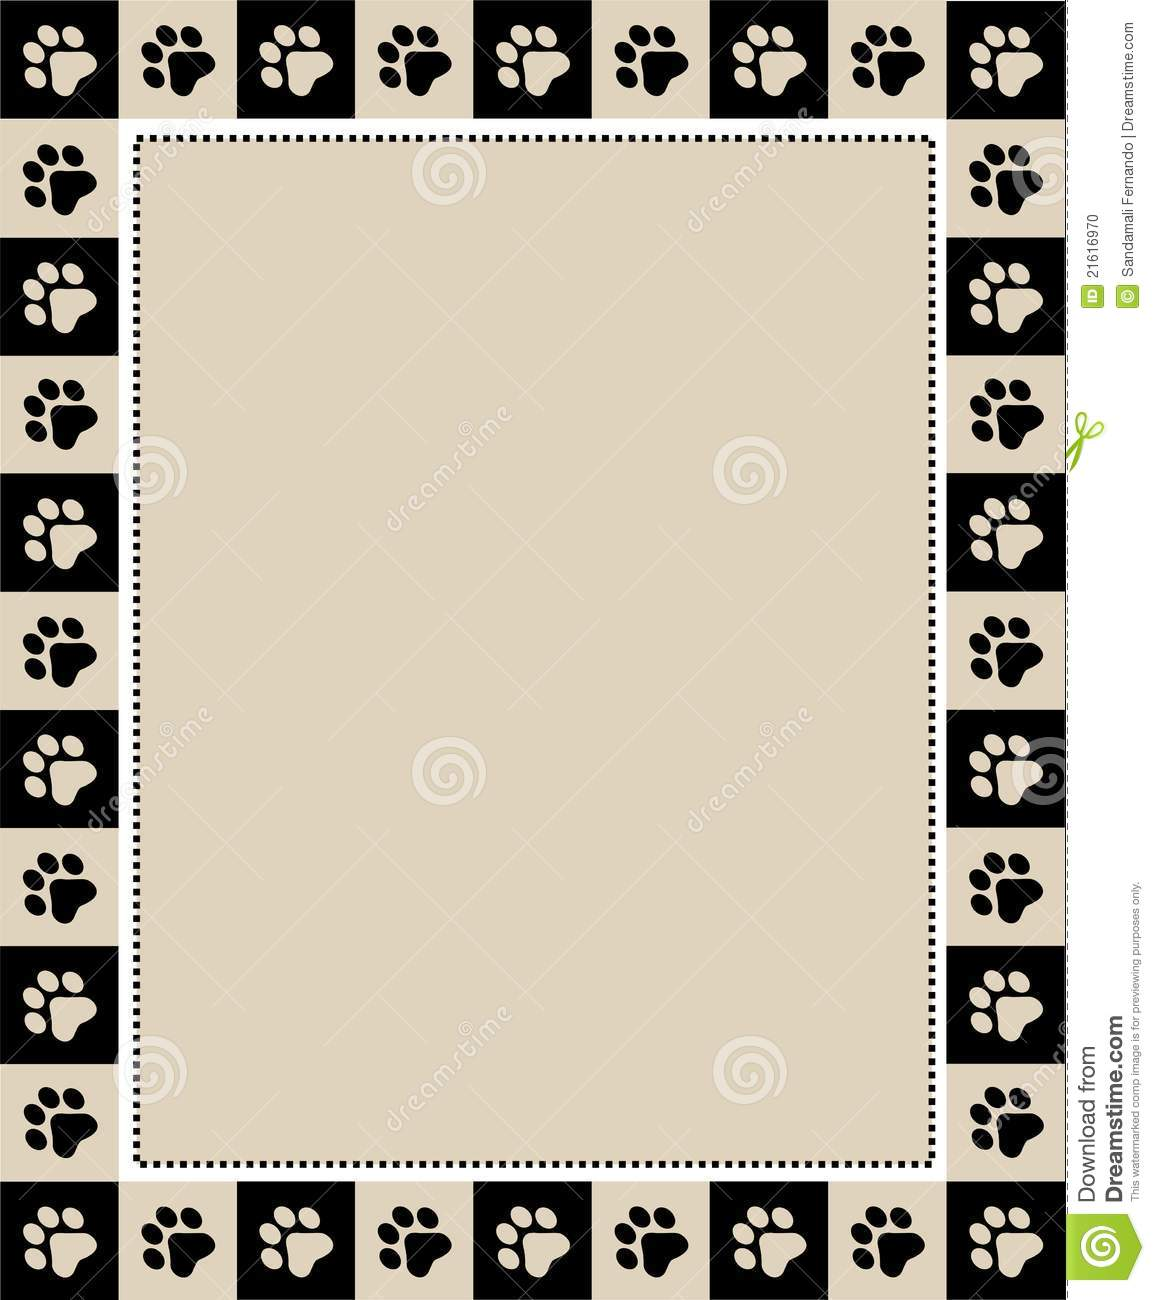 Dog borders and frames - photo#18